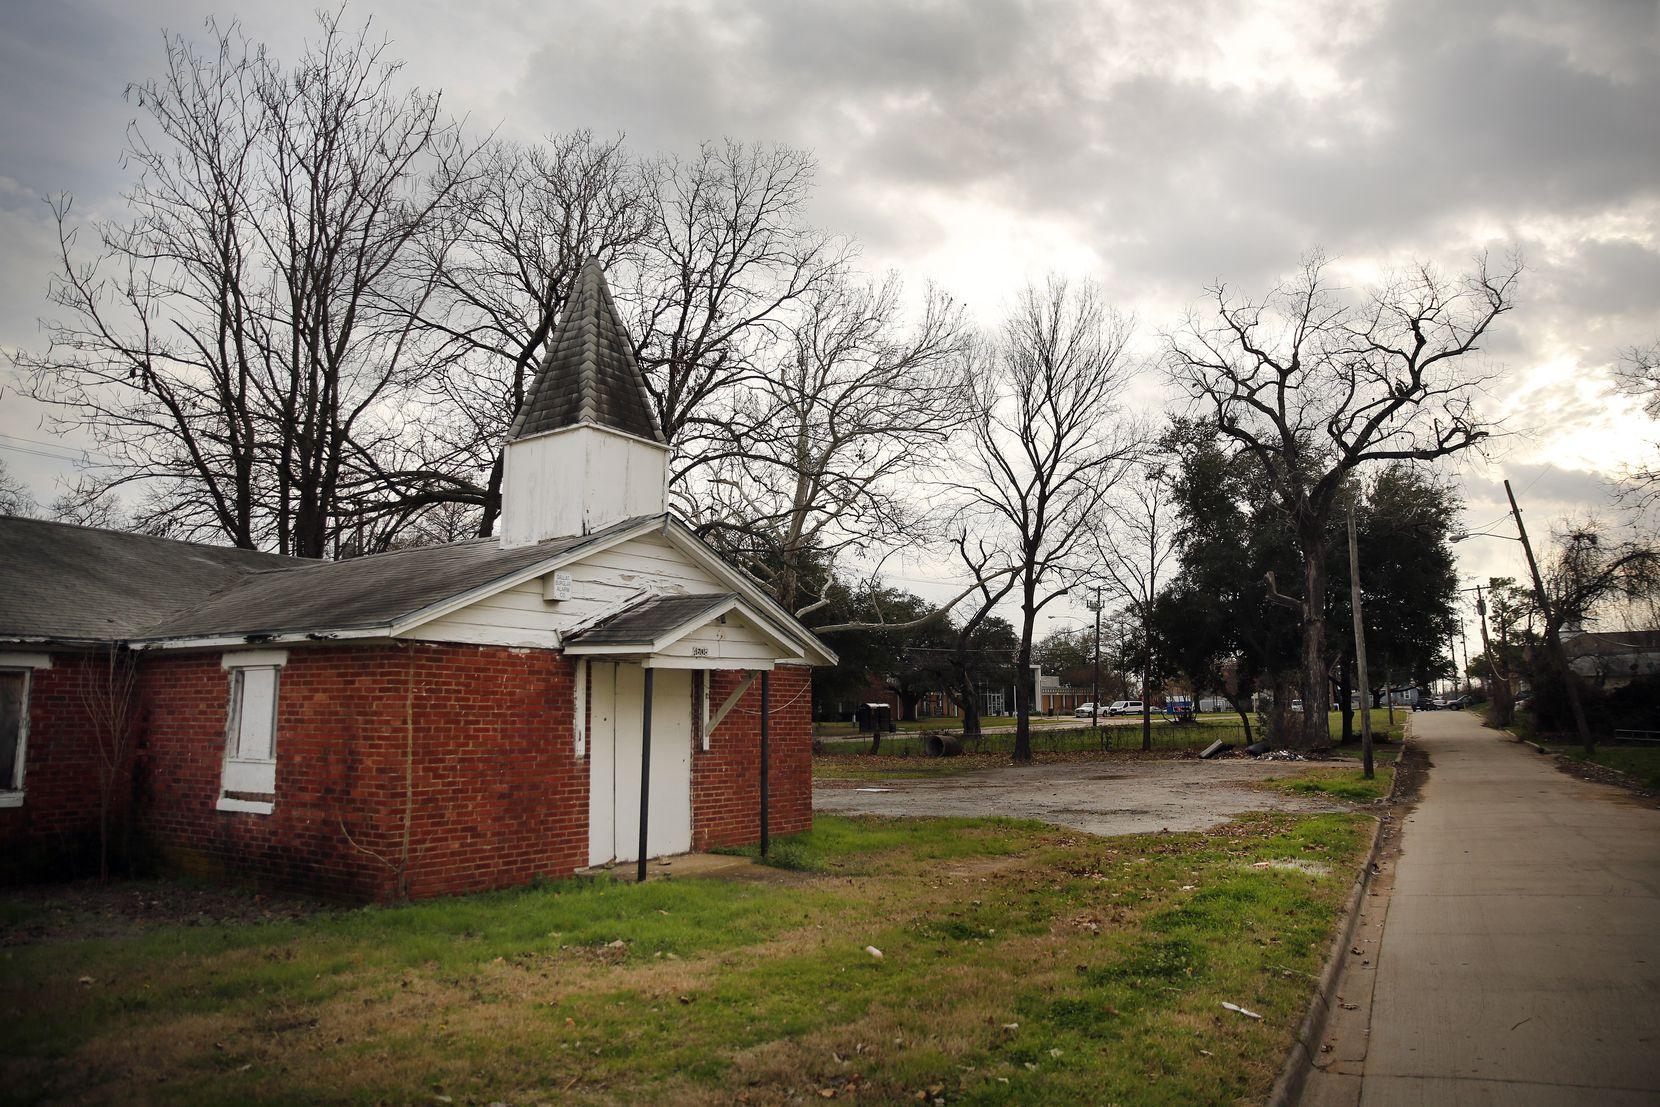 The Dallas Central Appraisal District said this church on Wahoo Street  belongs to the Zan Wesley Holmes Jr. Community Outreach Center. It has been boarded up for years.